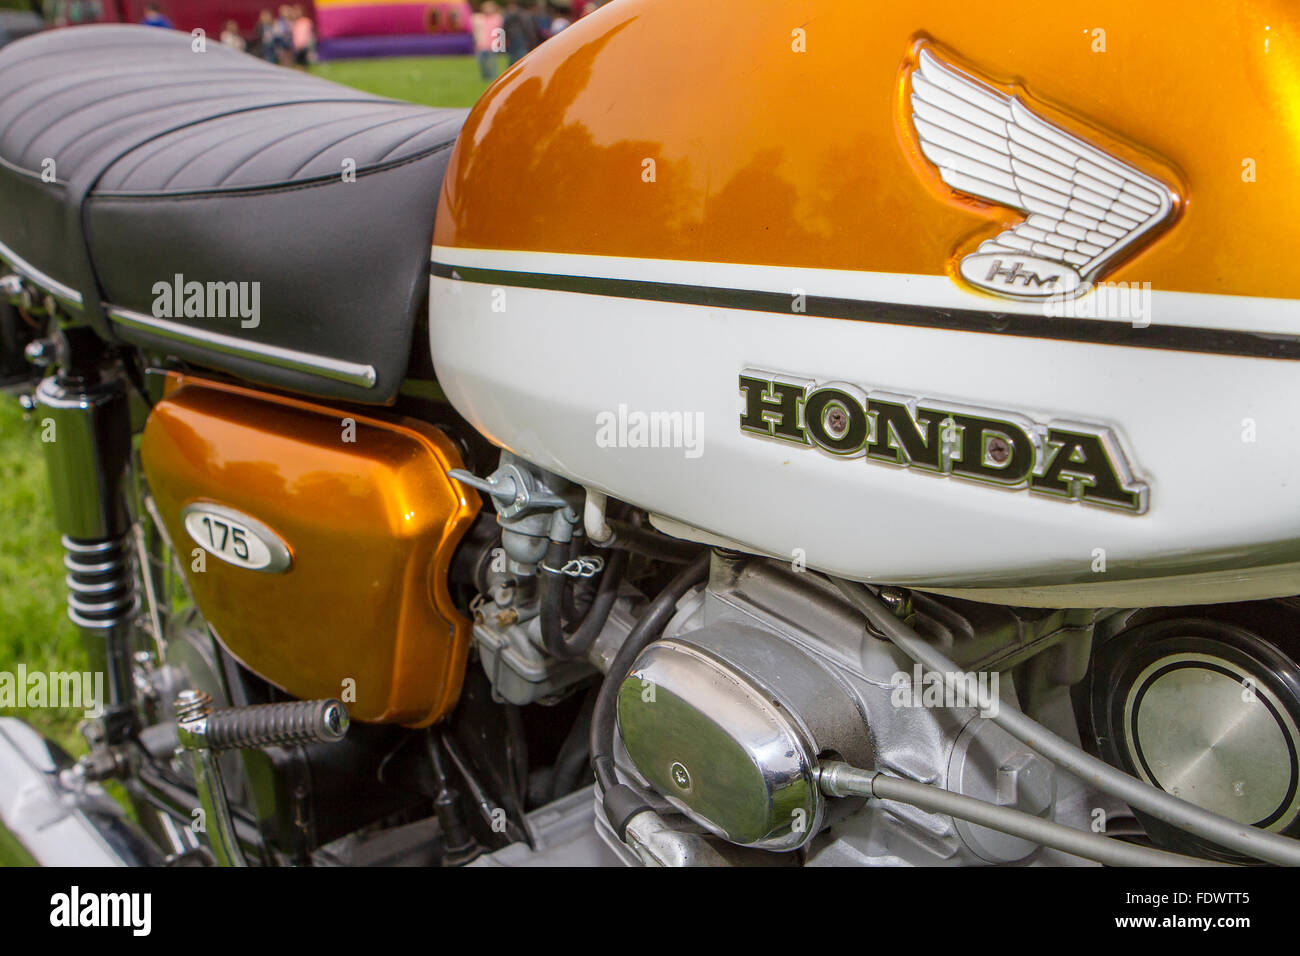 Cb 175 Stock Photos Images Alamy 1971 Cb175 Wiring Diagram Close Up Of The Side A Gold Honda Motorcycle Image